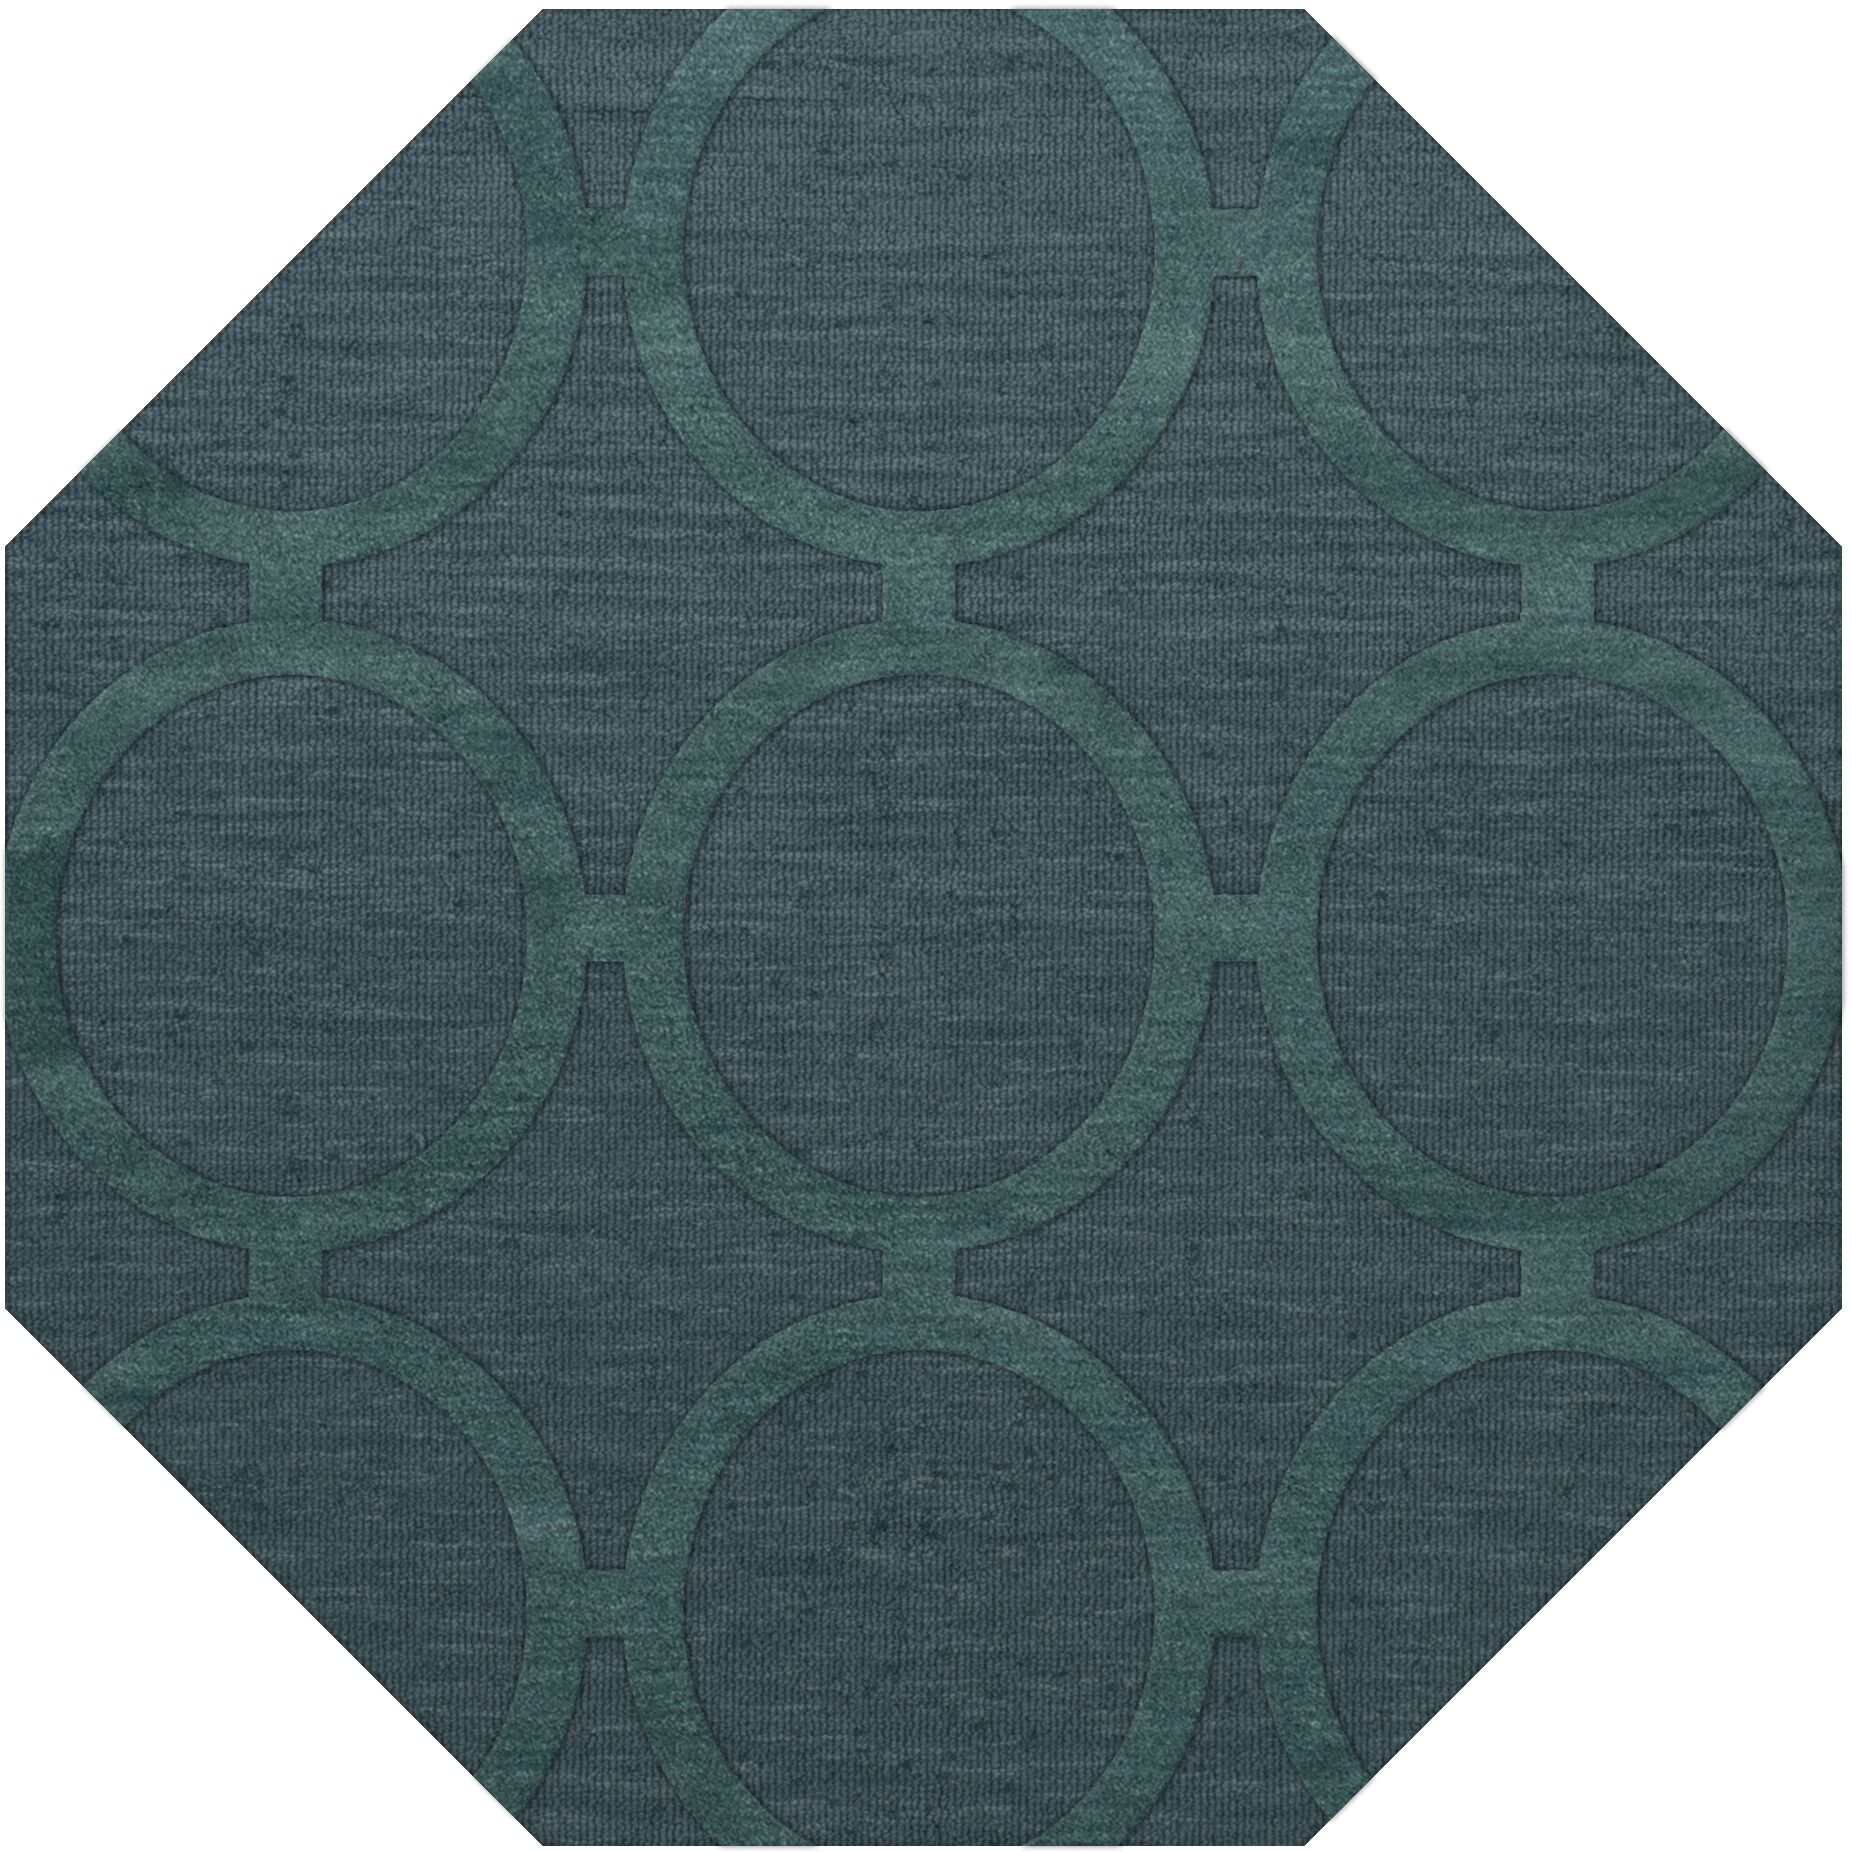 Dover Tufted Wool Teal Area Rug Rug Size: Octagon 8'